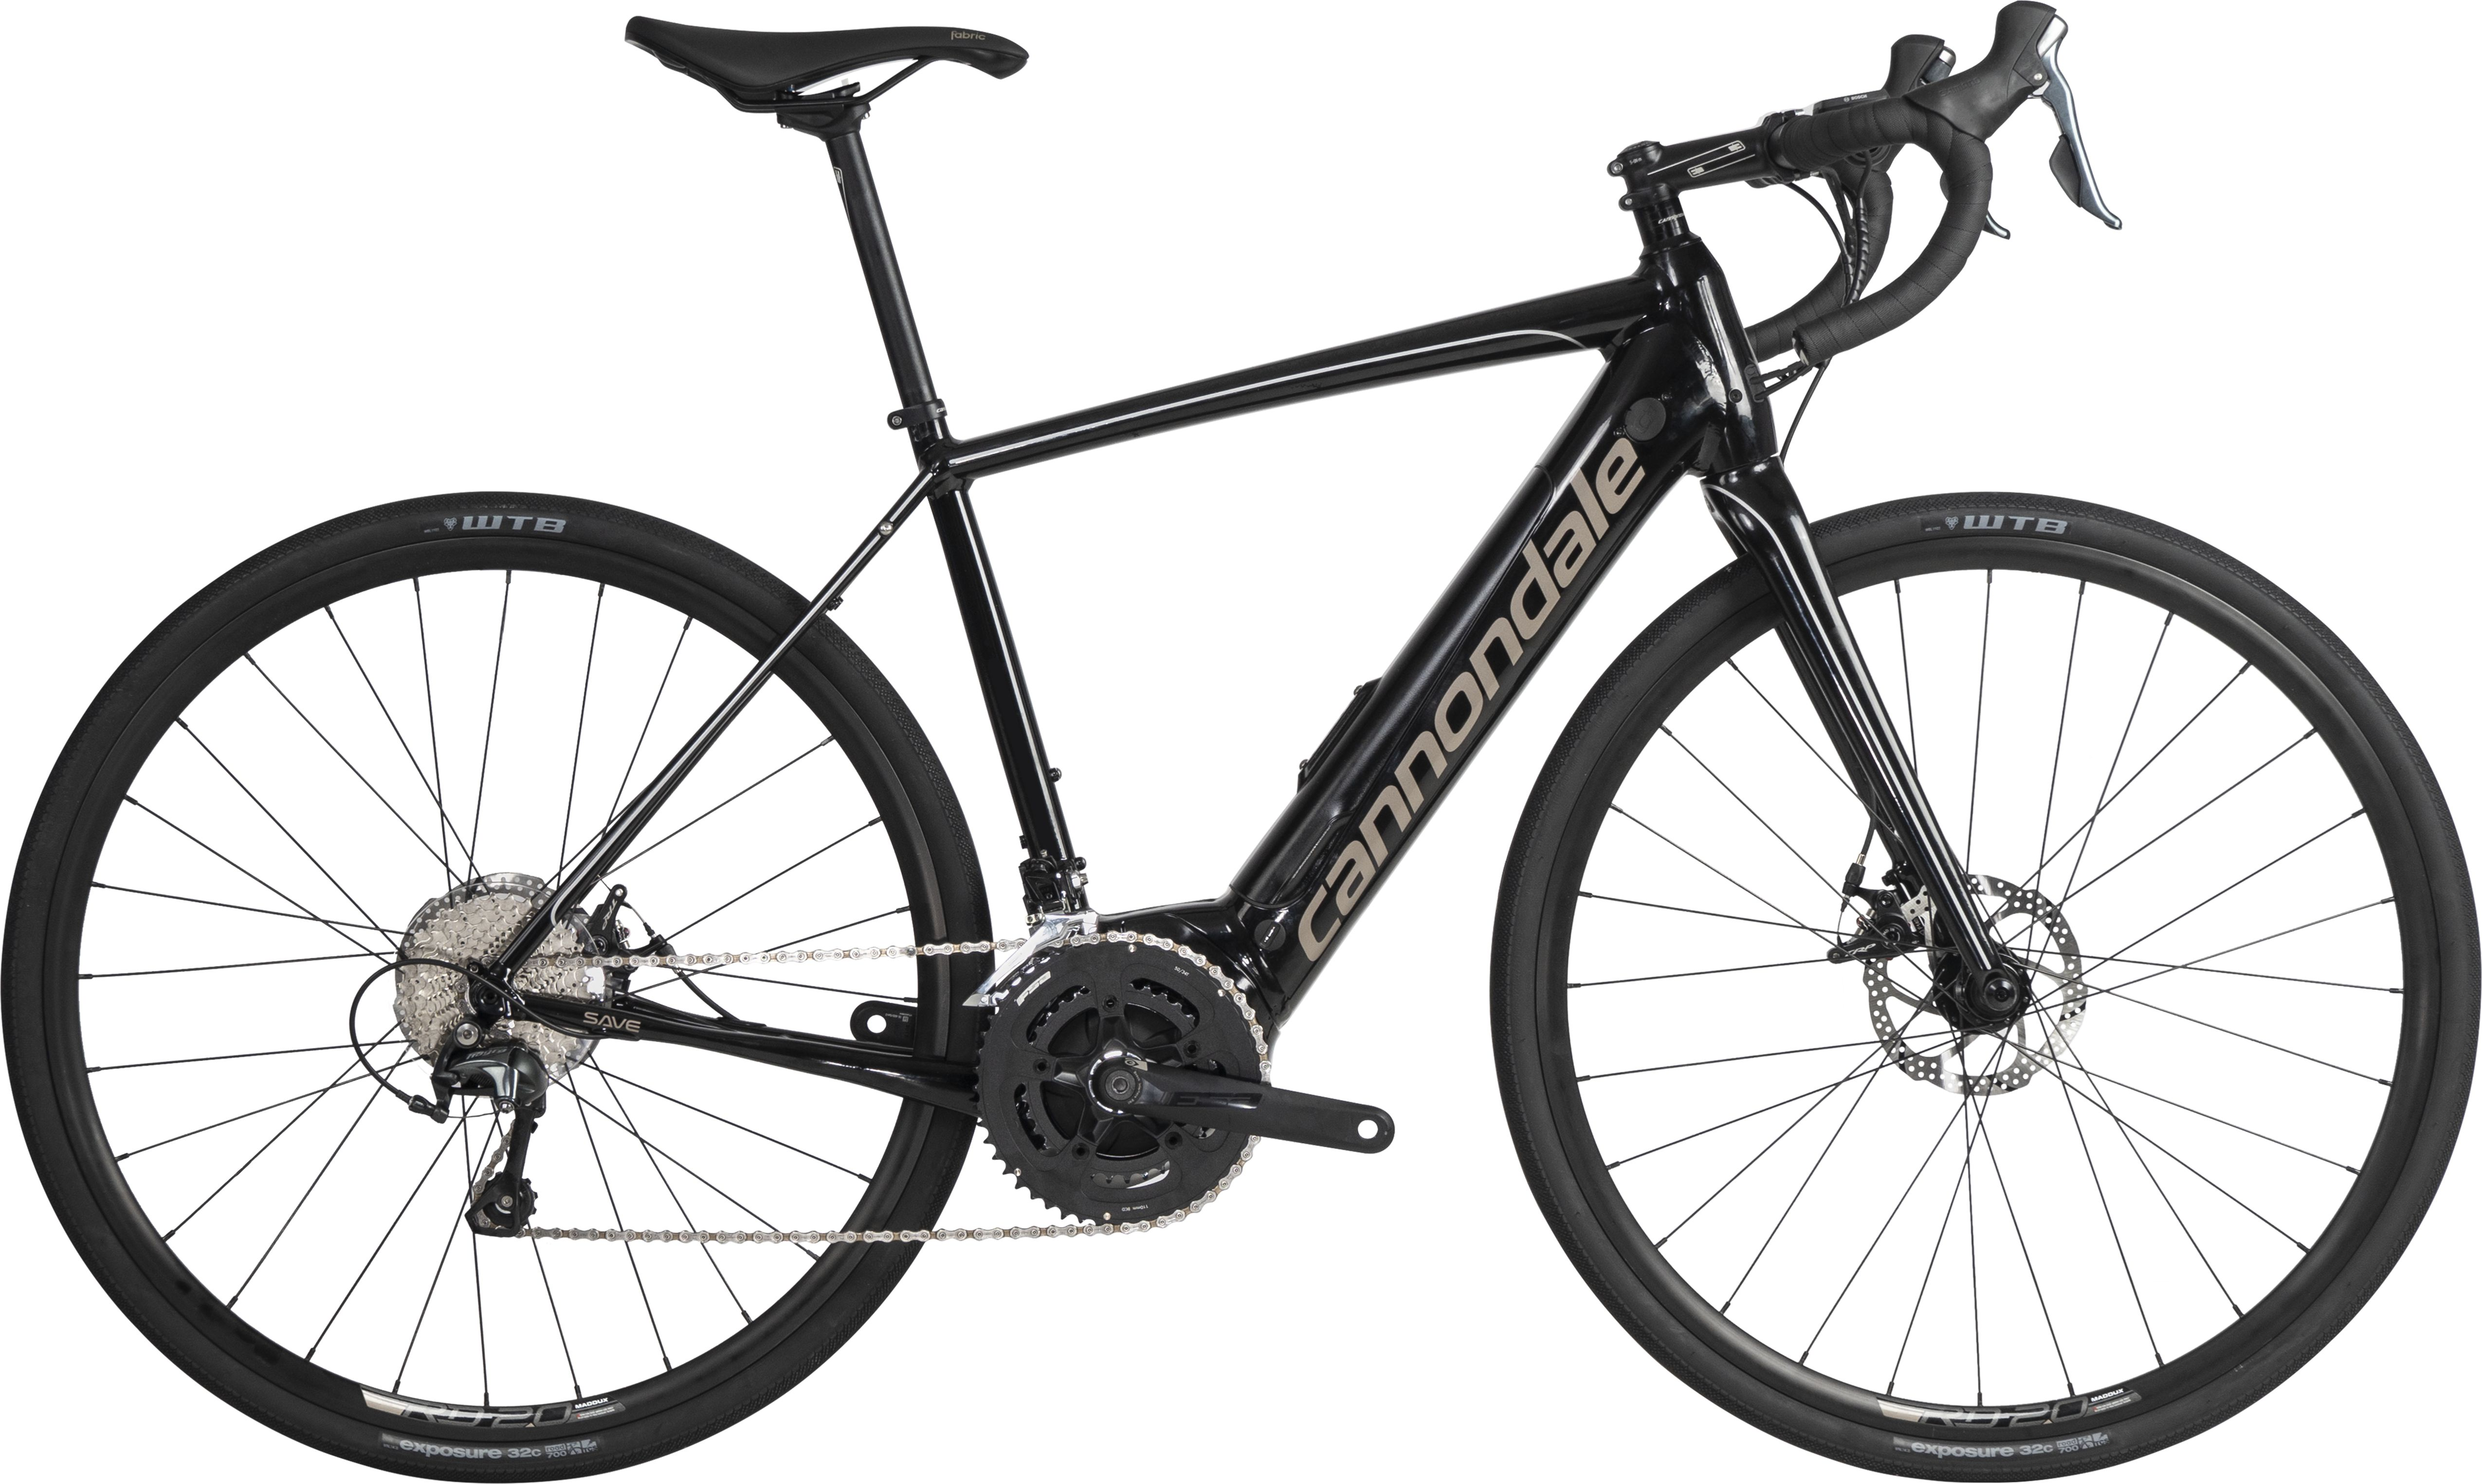 Cannondale Synapse Neo 3 Electric Road Bike 2019 | City-cykler